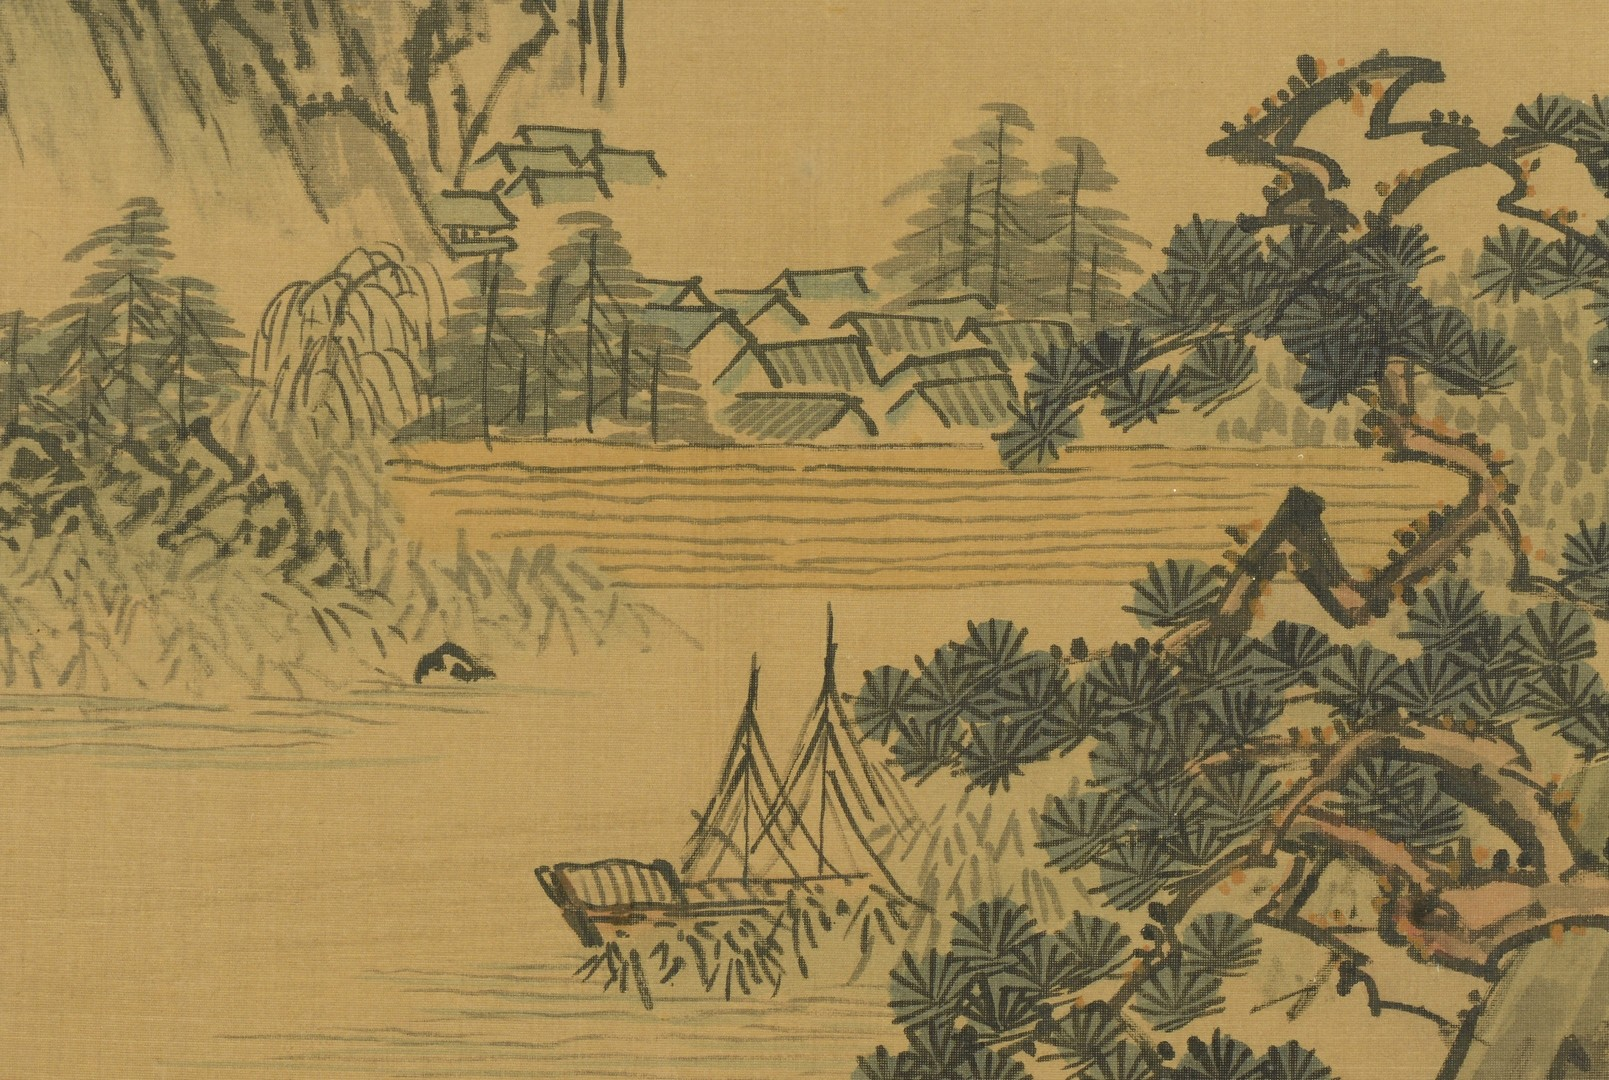 Lot 3383152: 3 Framed Chinese Silk Scroll Paintings